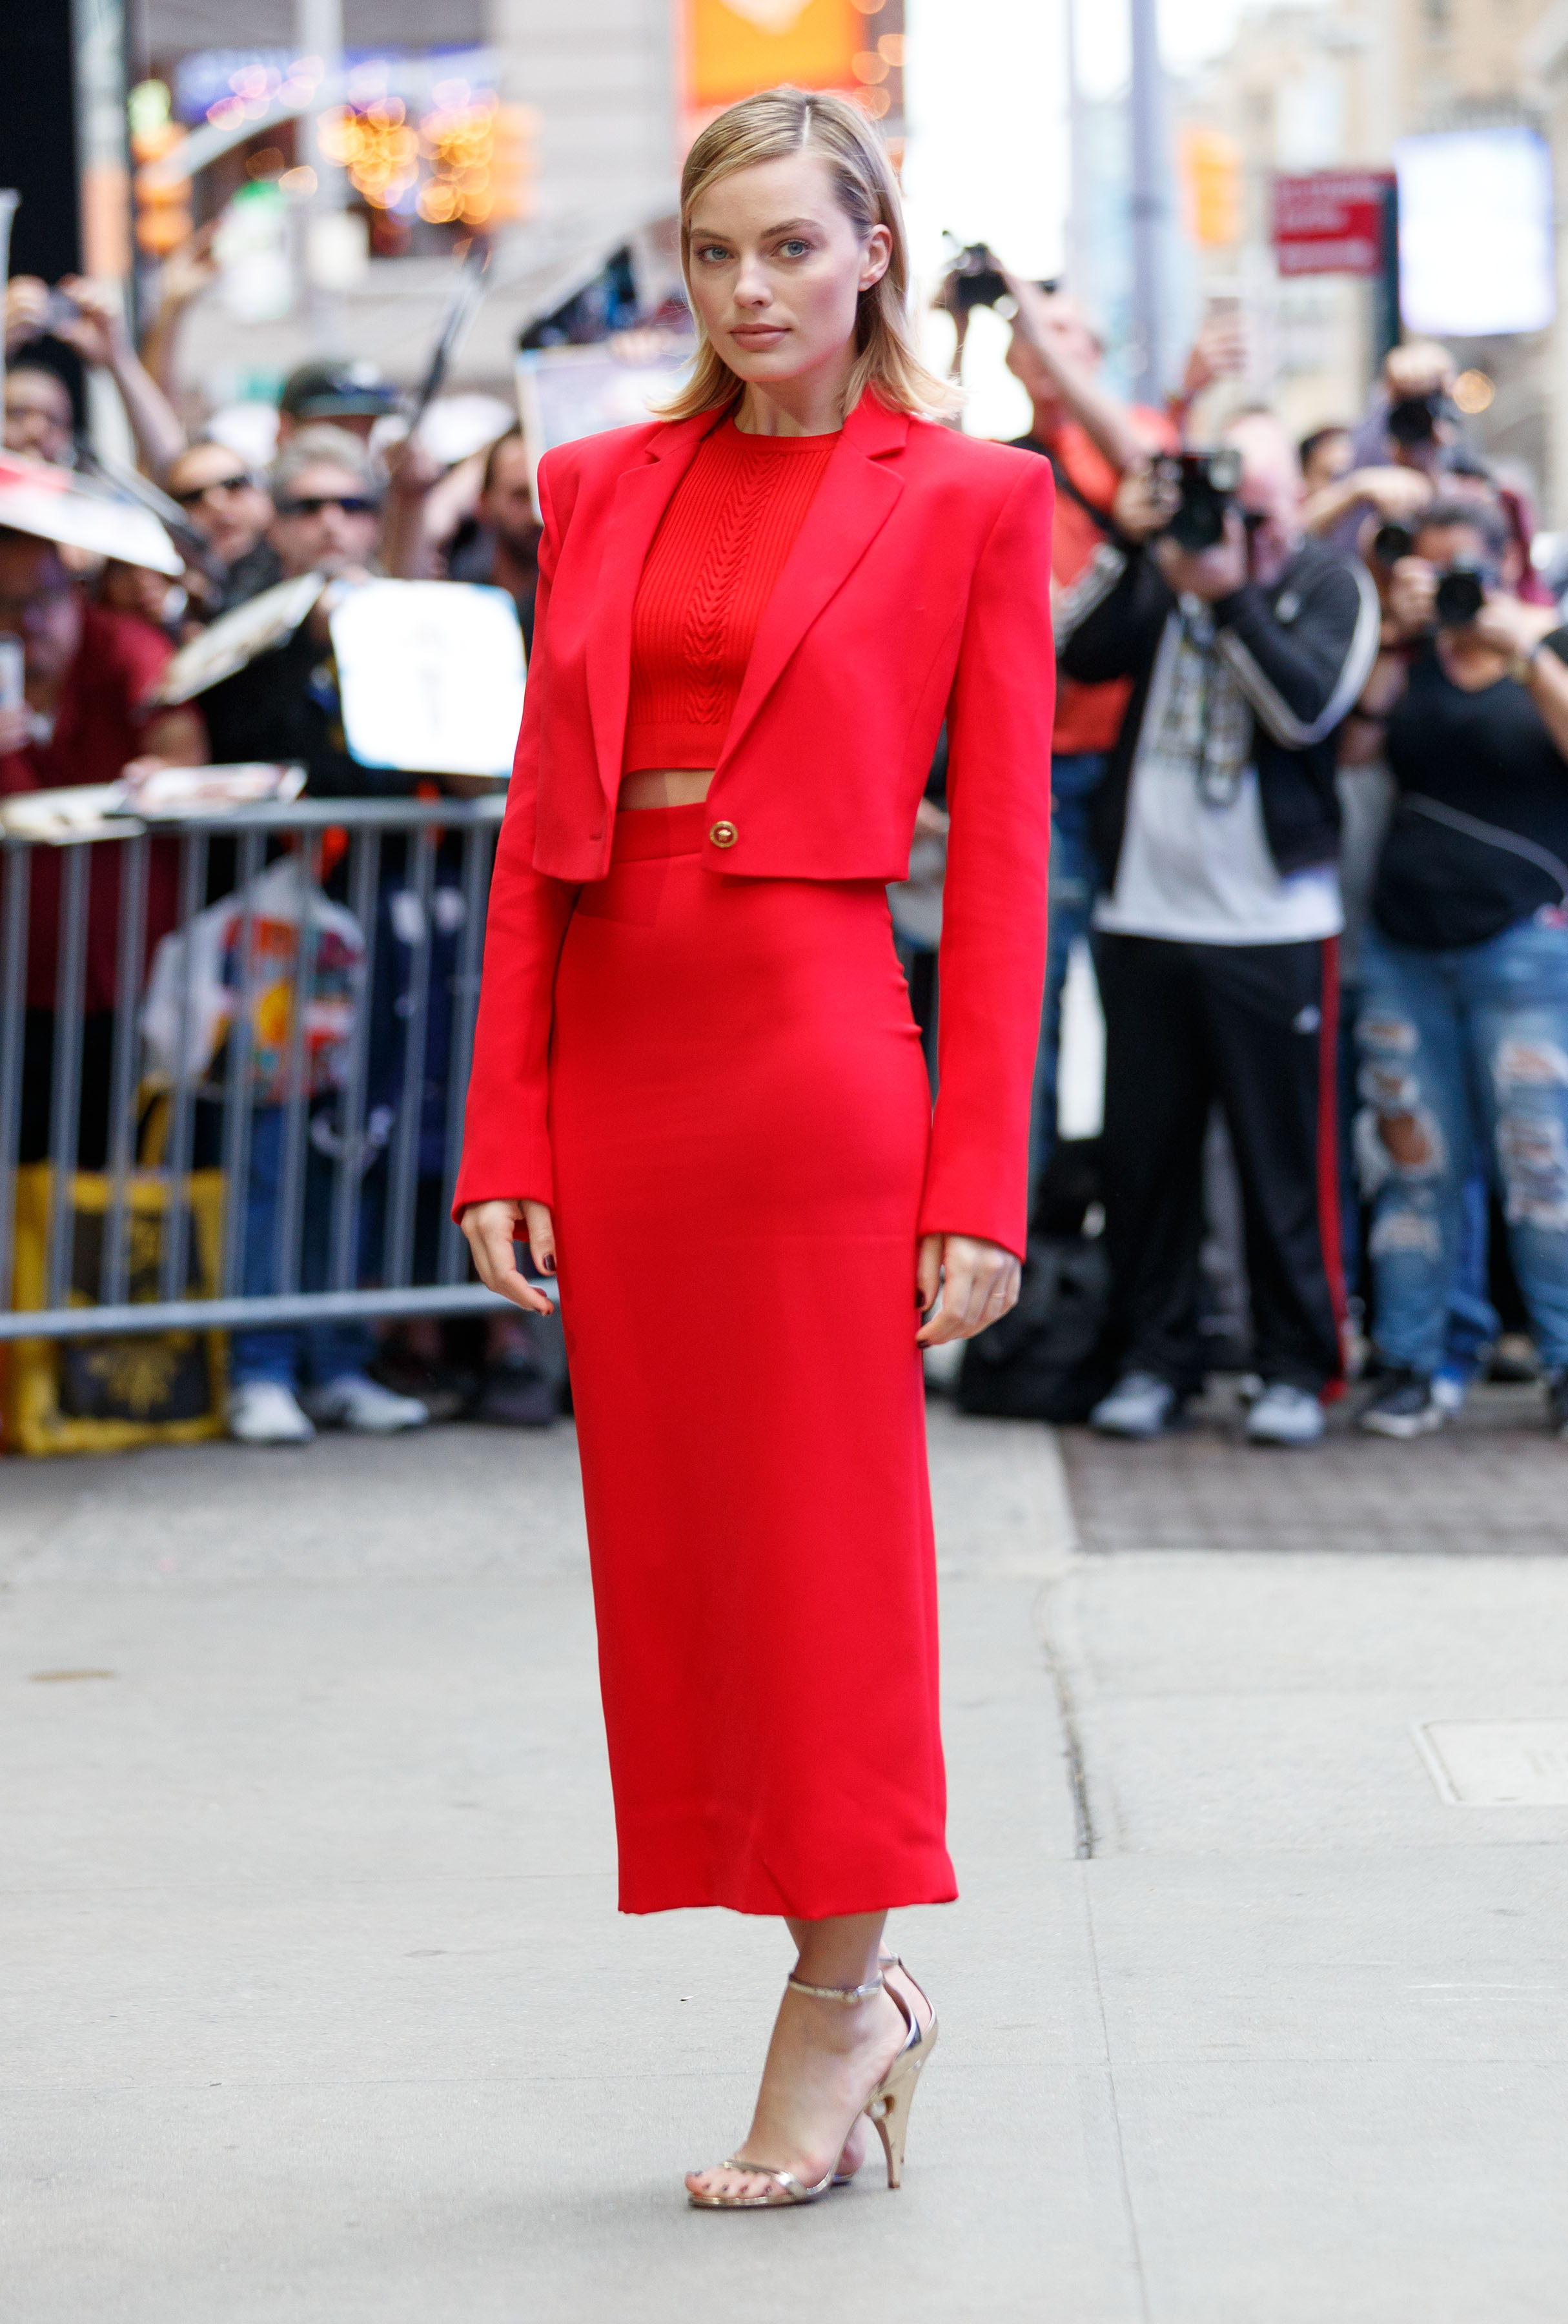 Margot Robbie looks ravishing in red outside 'Good Morning America' in New York City, New York. <P> Pictured: Margot Robbie <B>Ref: SPL1598603  111017  </B><BR/> Picture by: Jackson Lee / Splash News<BR/> </P><P> <B>Splash News and Pictures</B><BR/> Los Angeles:310-821-2666<BR/> New York:212-619-2666<BR/> London:870-934-2666<BR/> <span id=